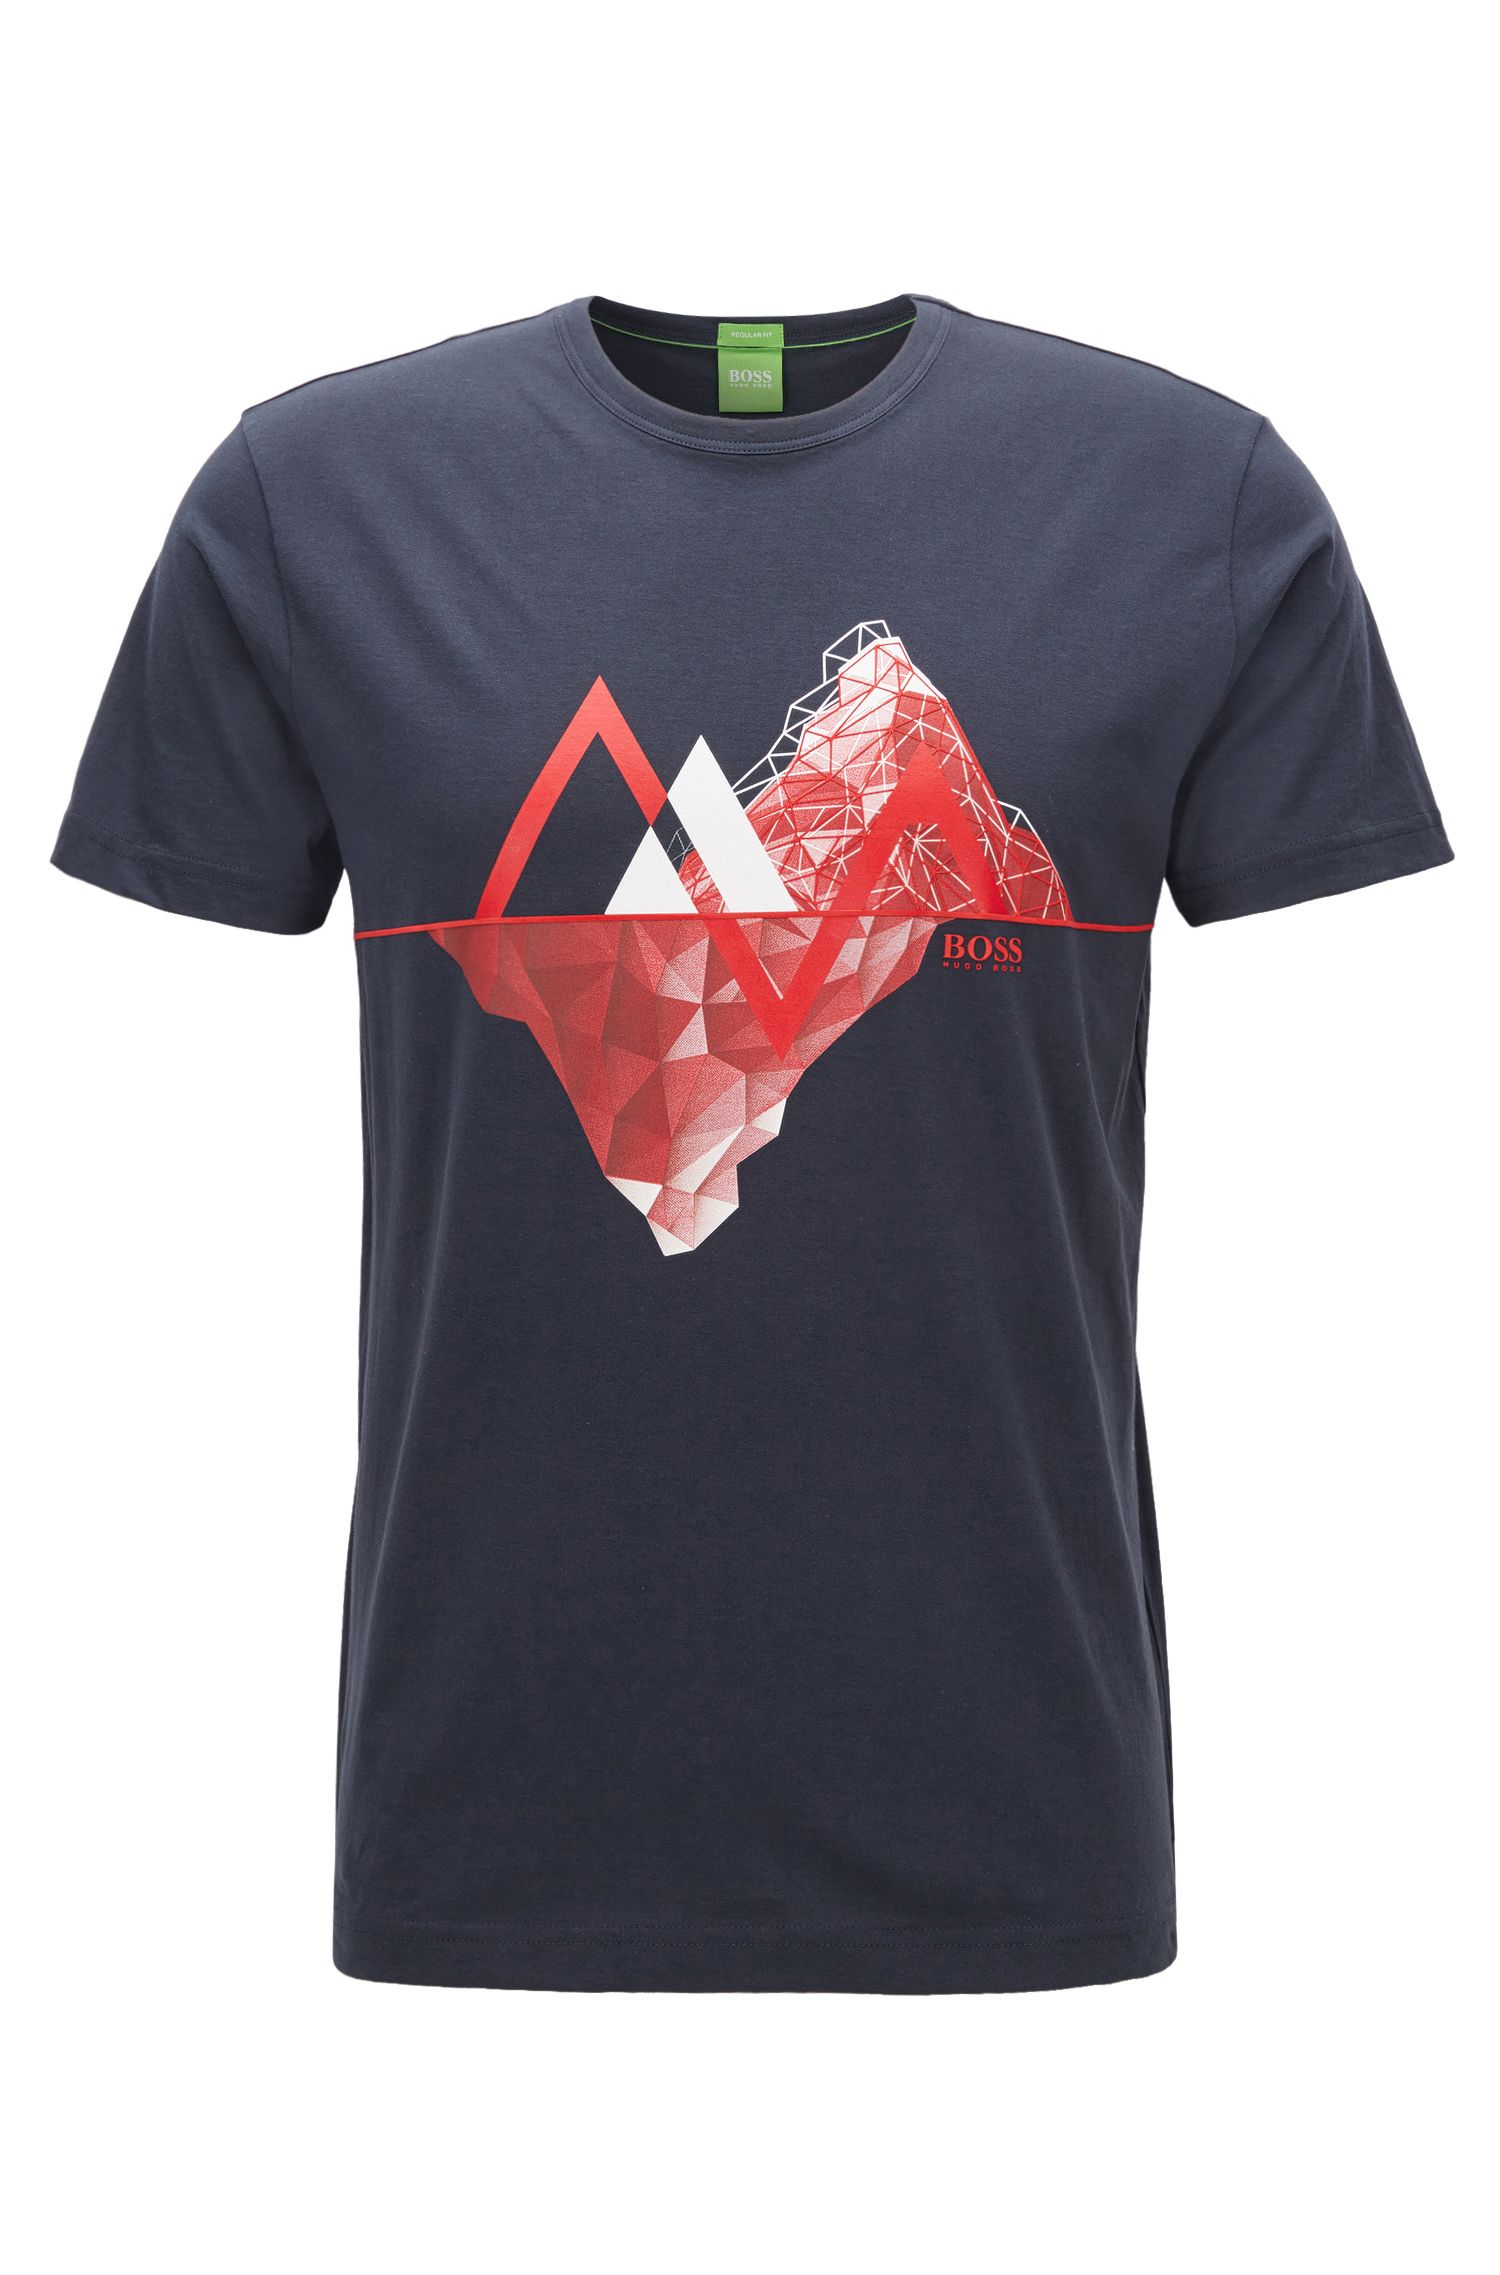 Cotton Graphic T-Shirt | Tee